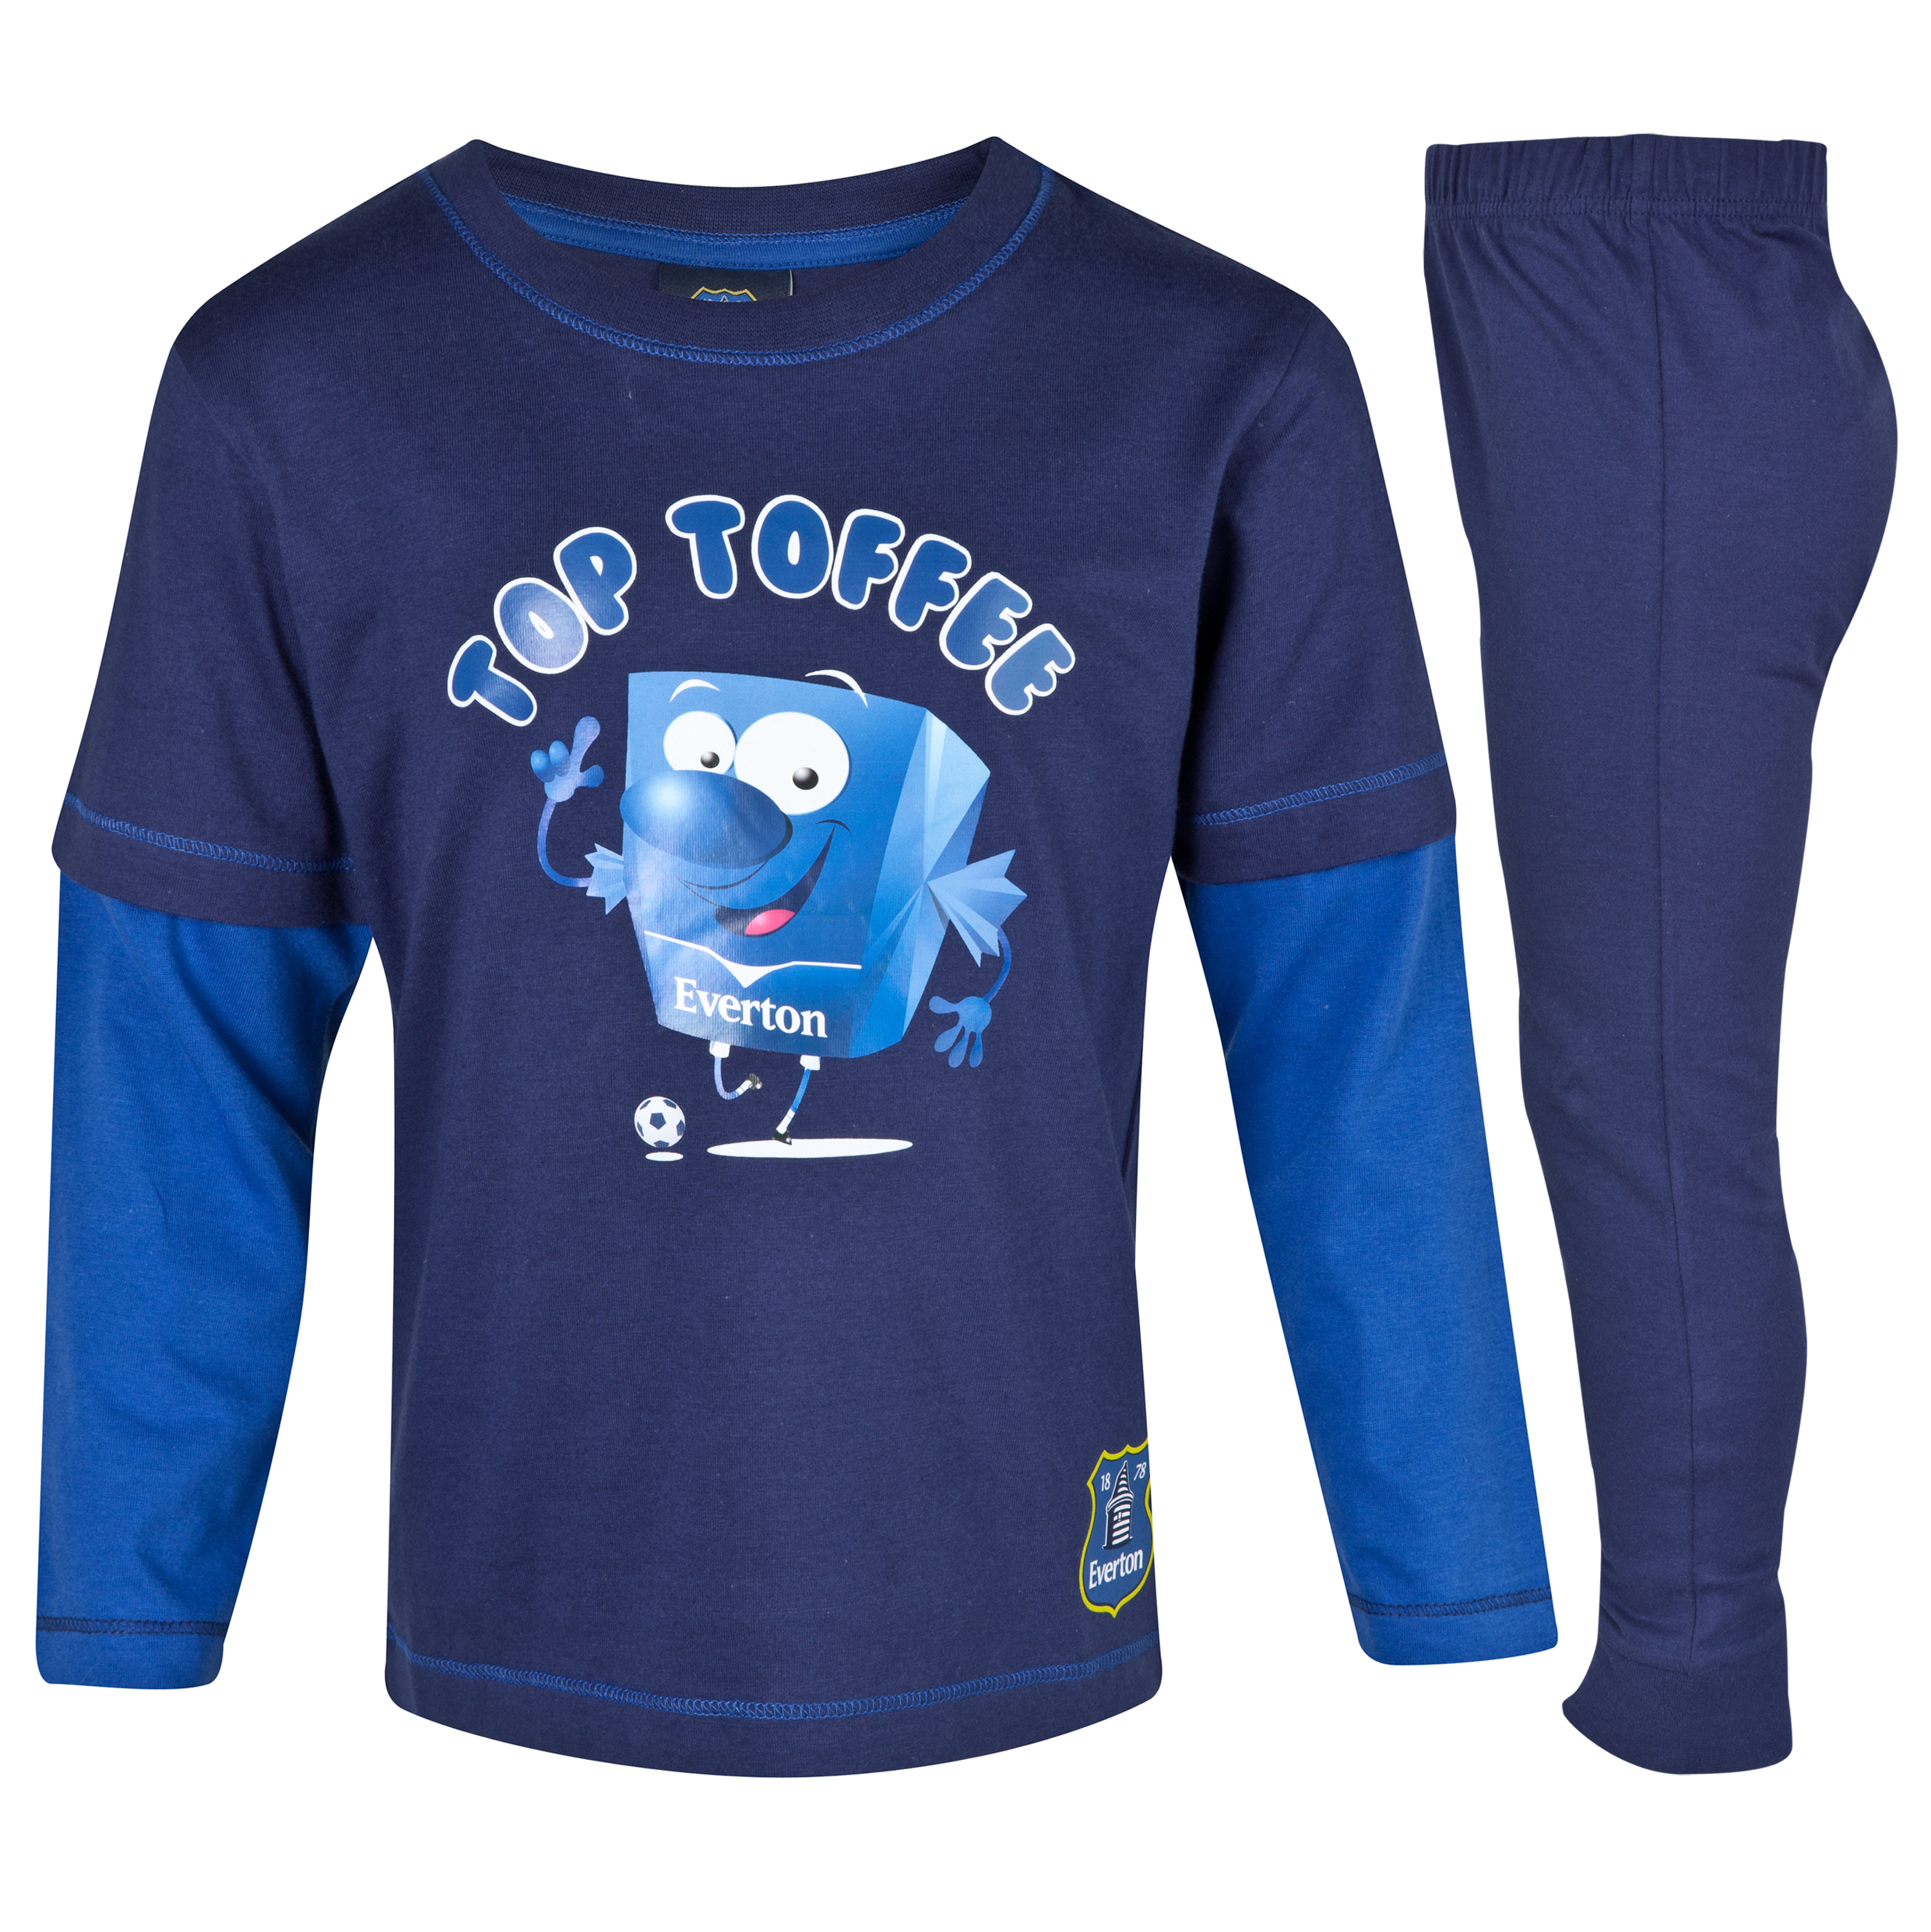 Everton Toffee Pyjamas Infant Boys Navy